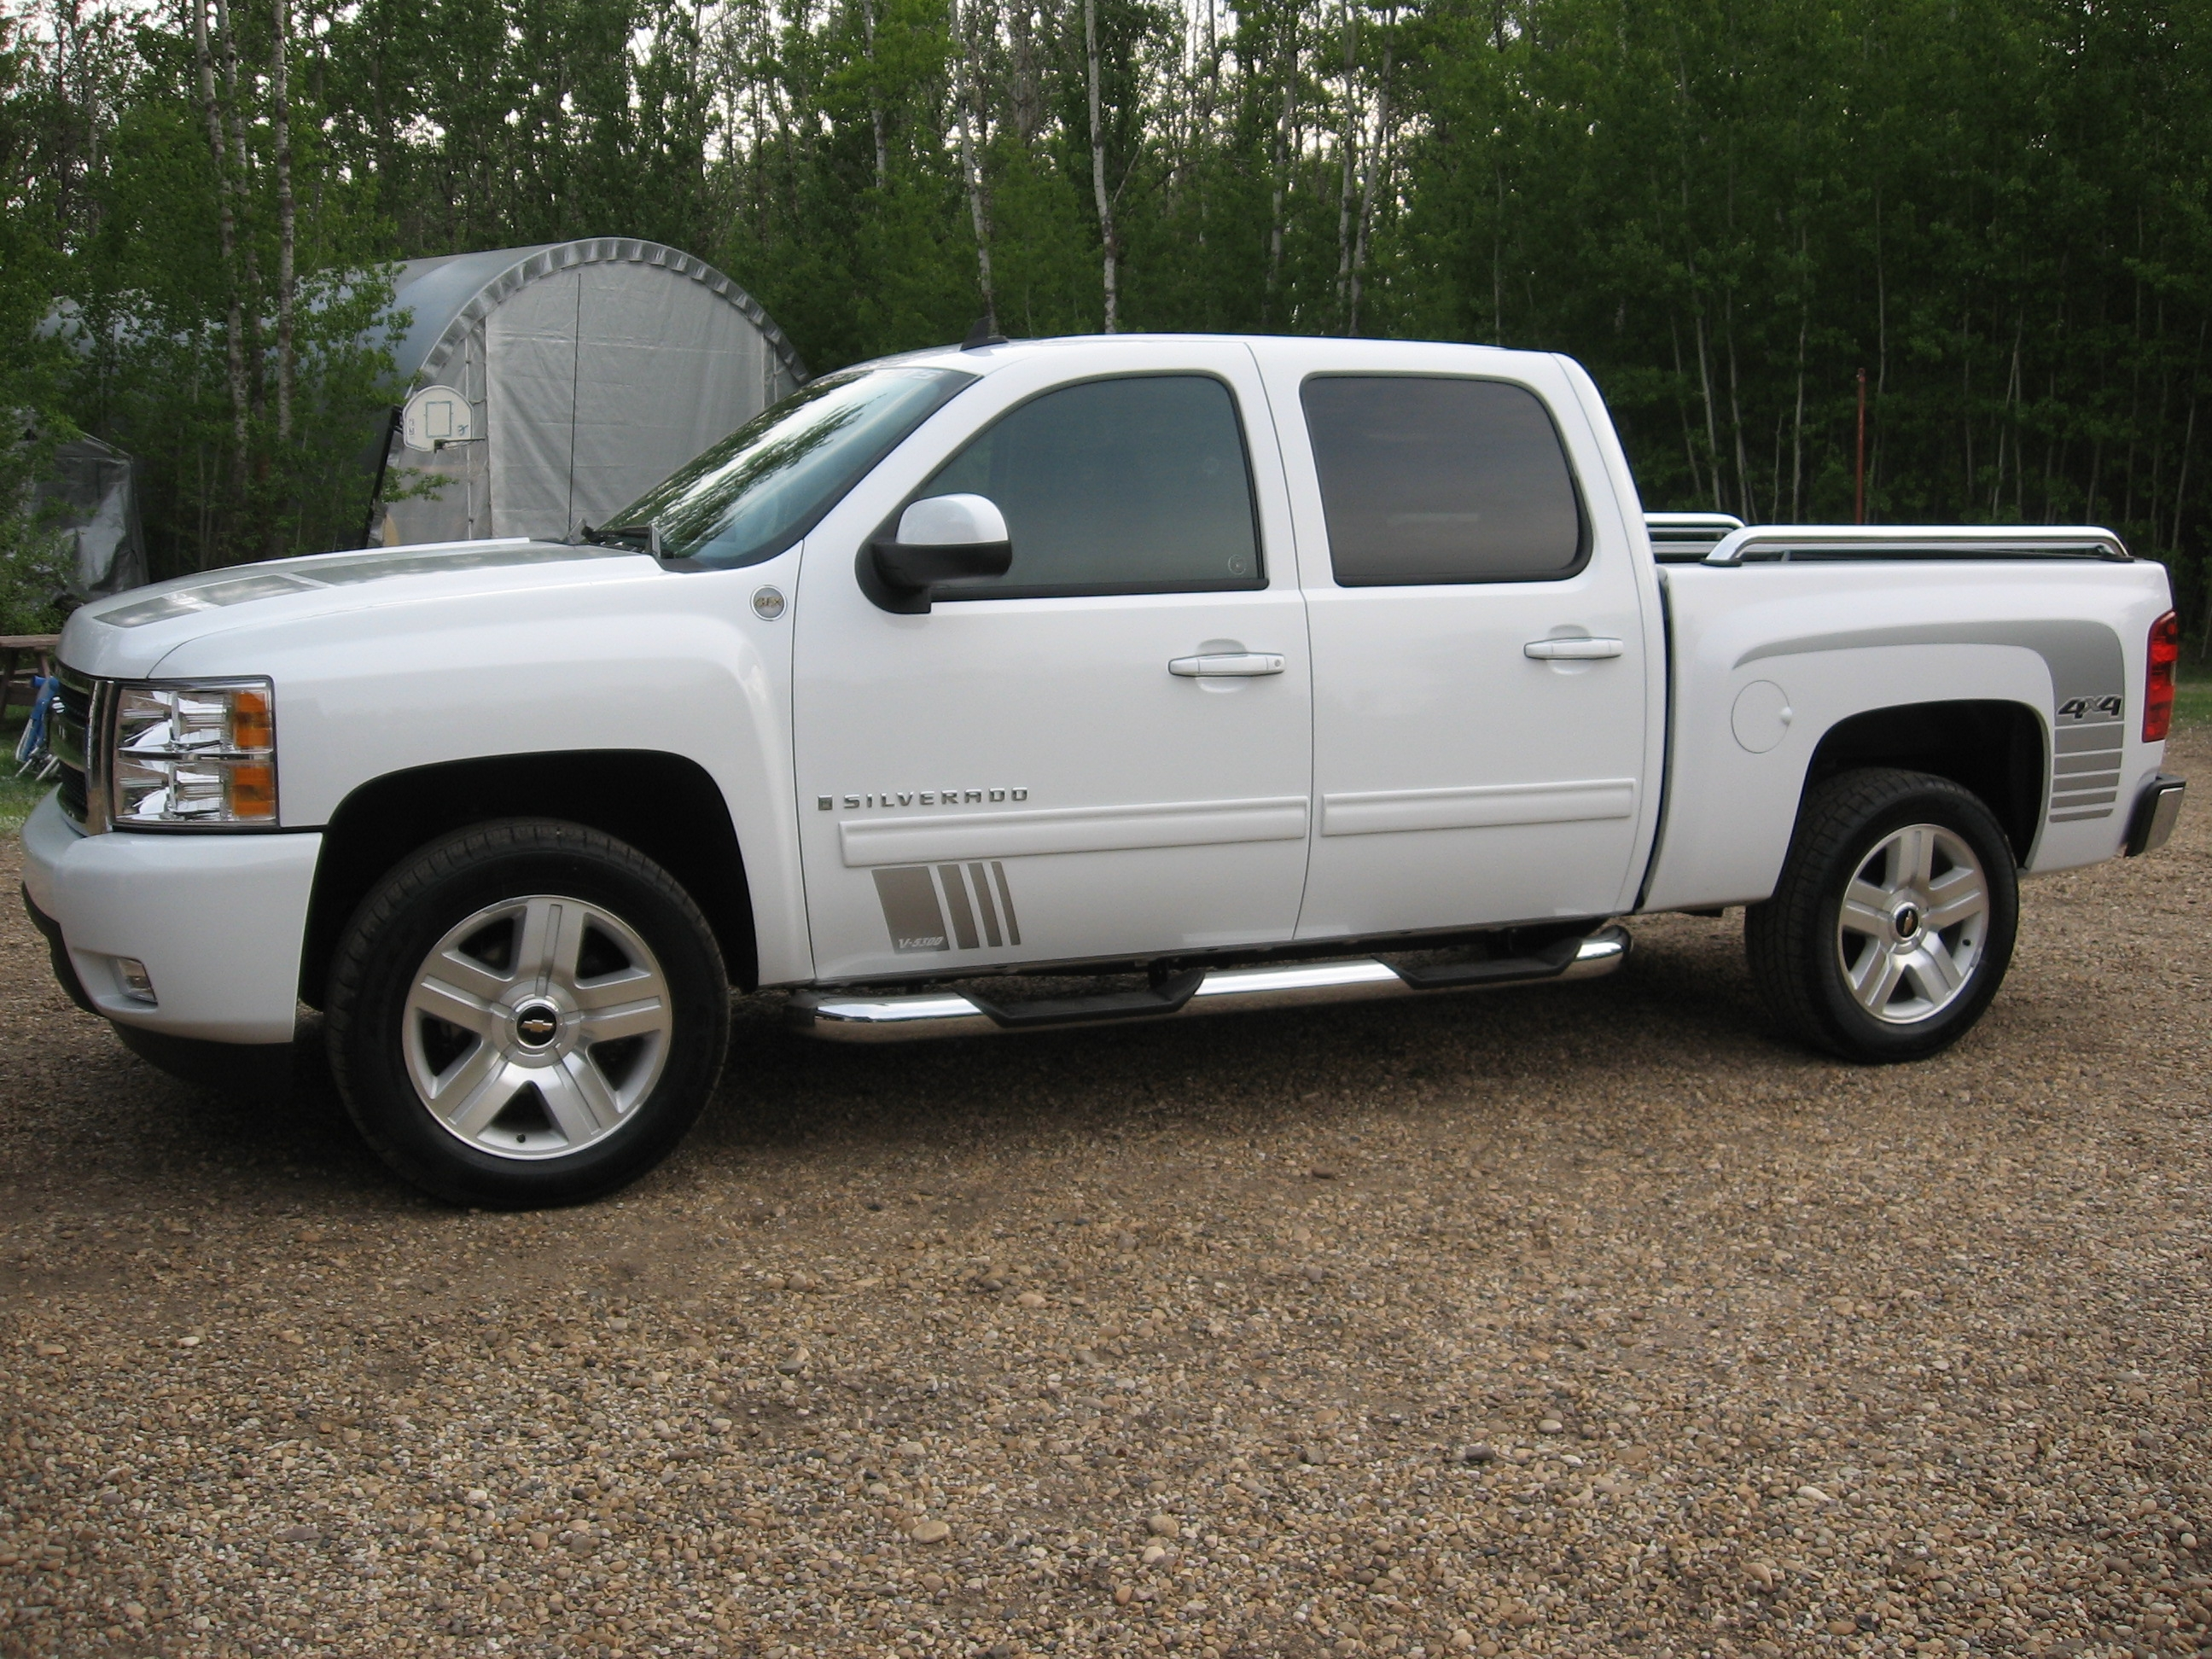 z24monster 2009 chevrolet silverado 1500 crew cab specs. Black Bedroom Furniture Sets. Home Design Ideas